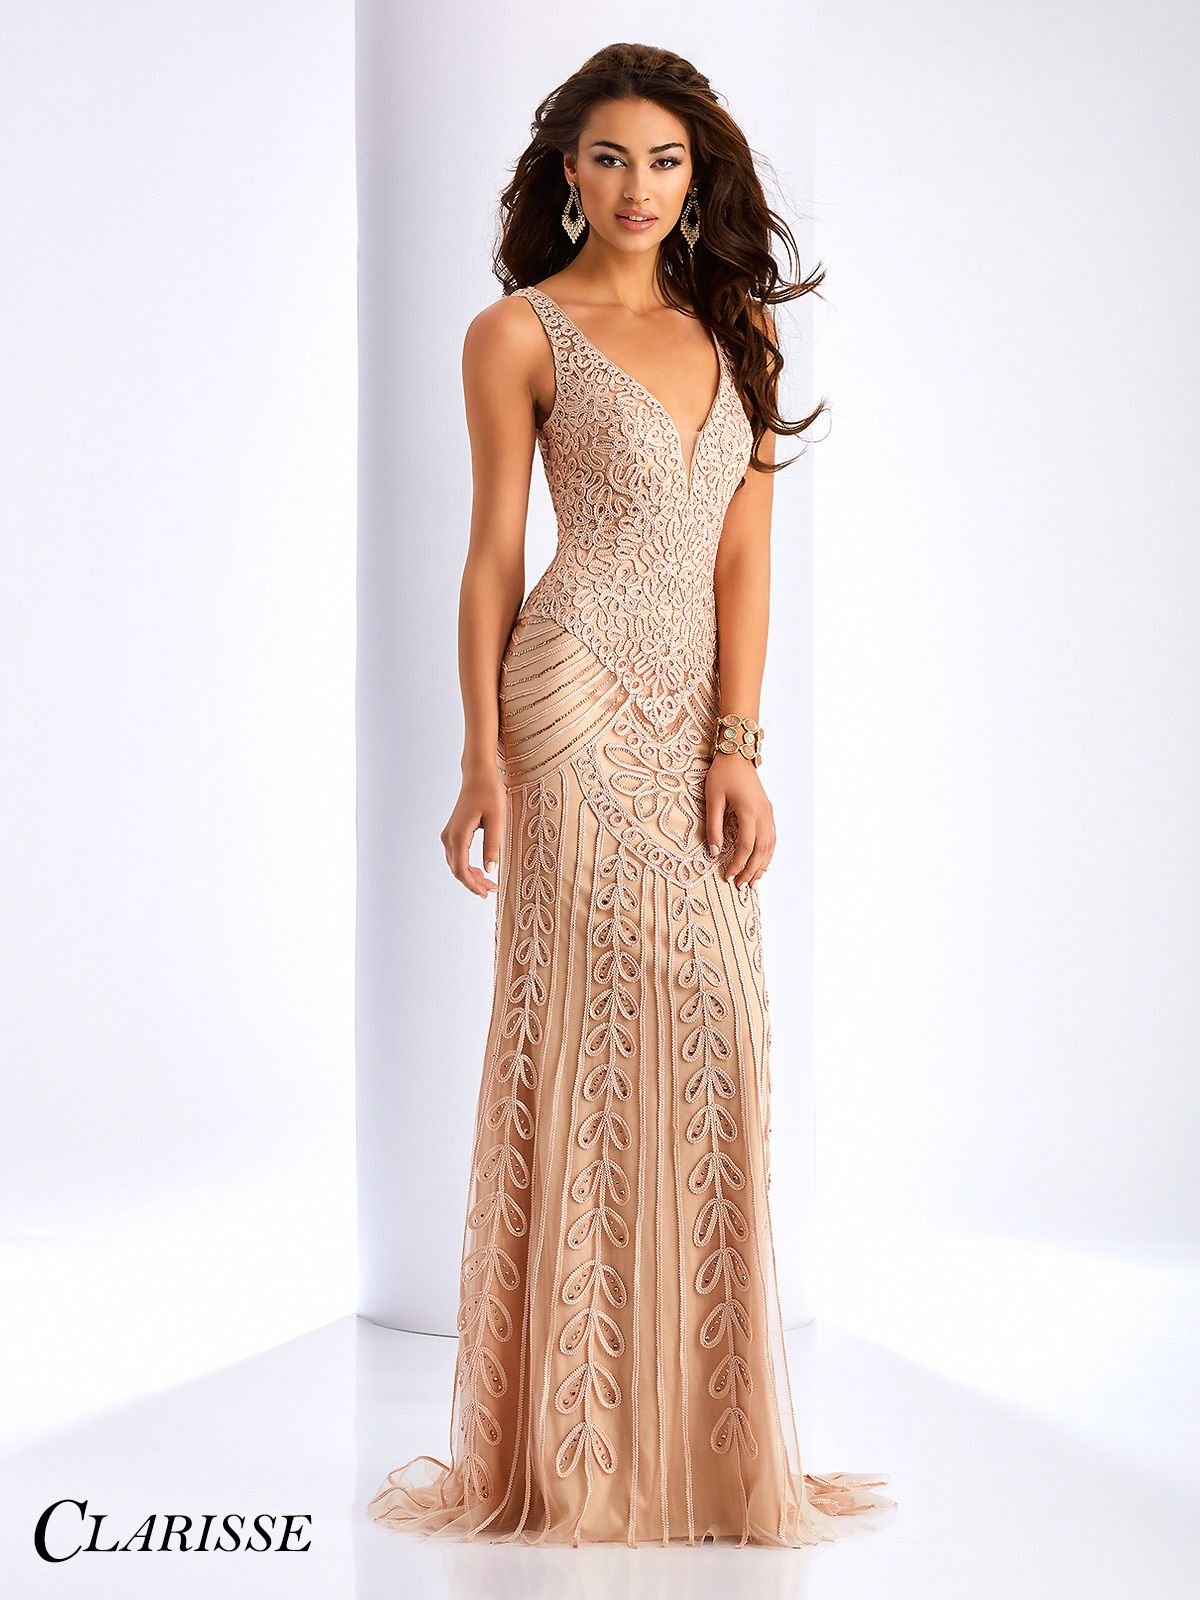 Clarisse soutache embellished prom dress evening gowns